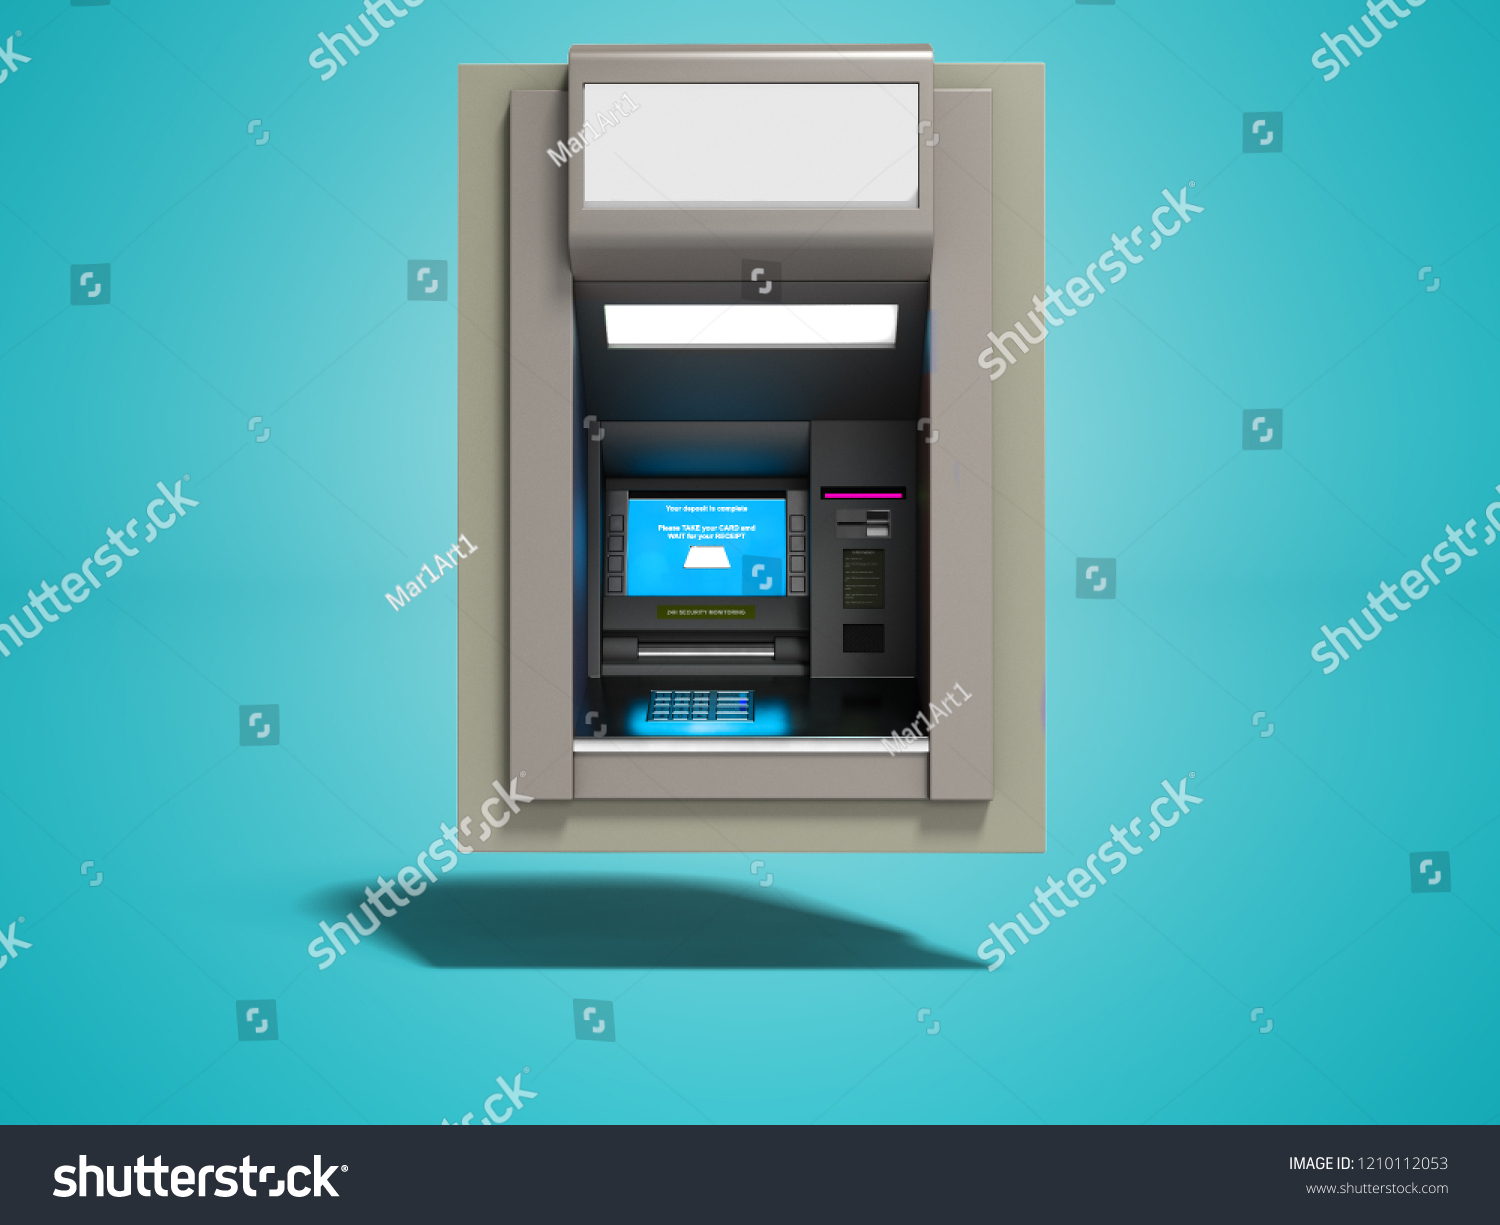 Cash Pool Marl Modern Atm Included Blue Screen 3 D Stock Illustration 1210112053